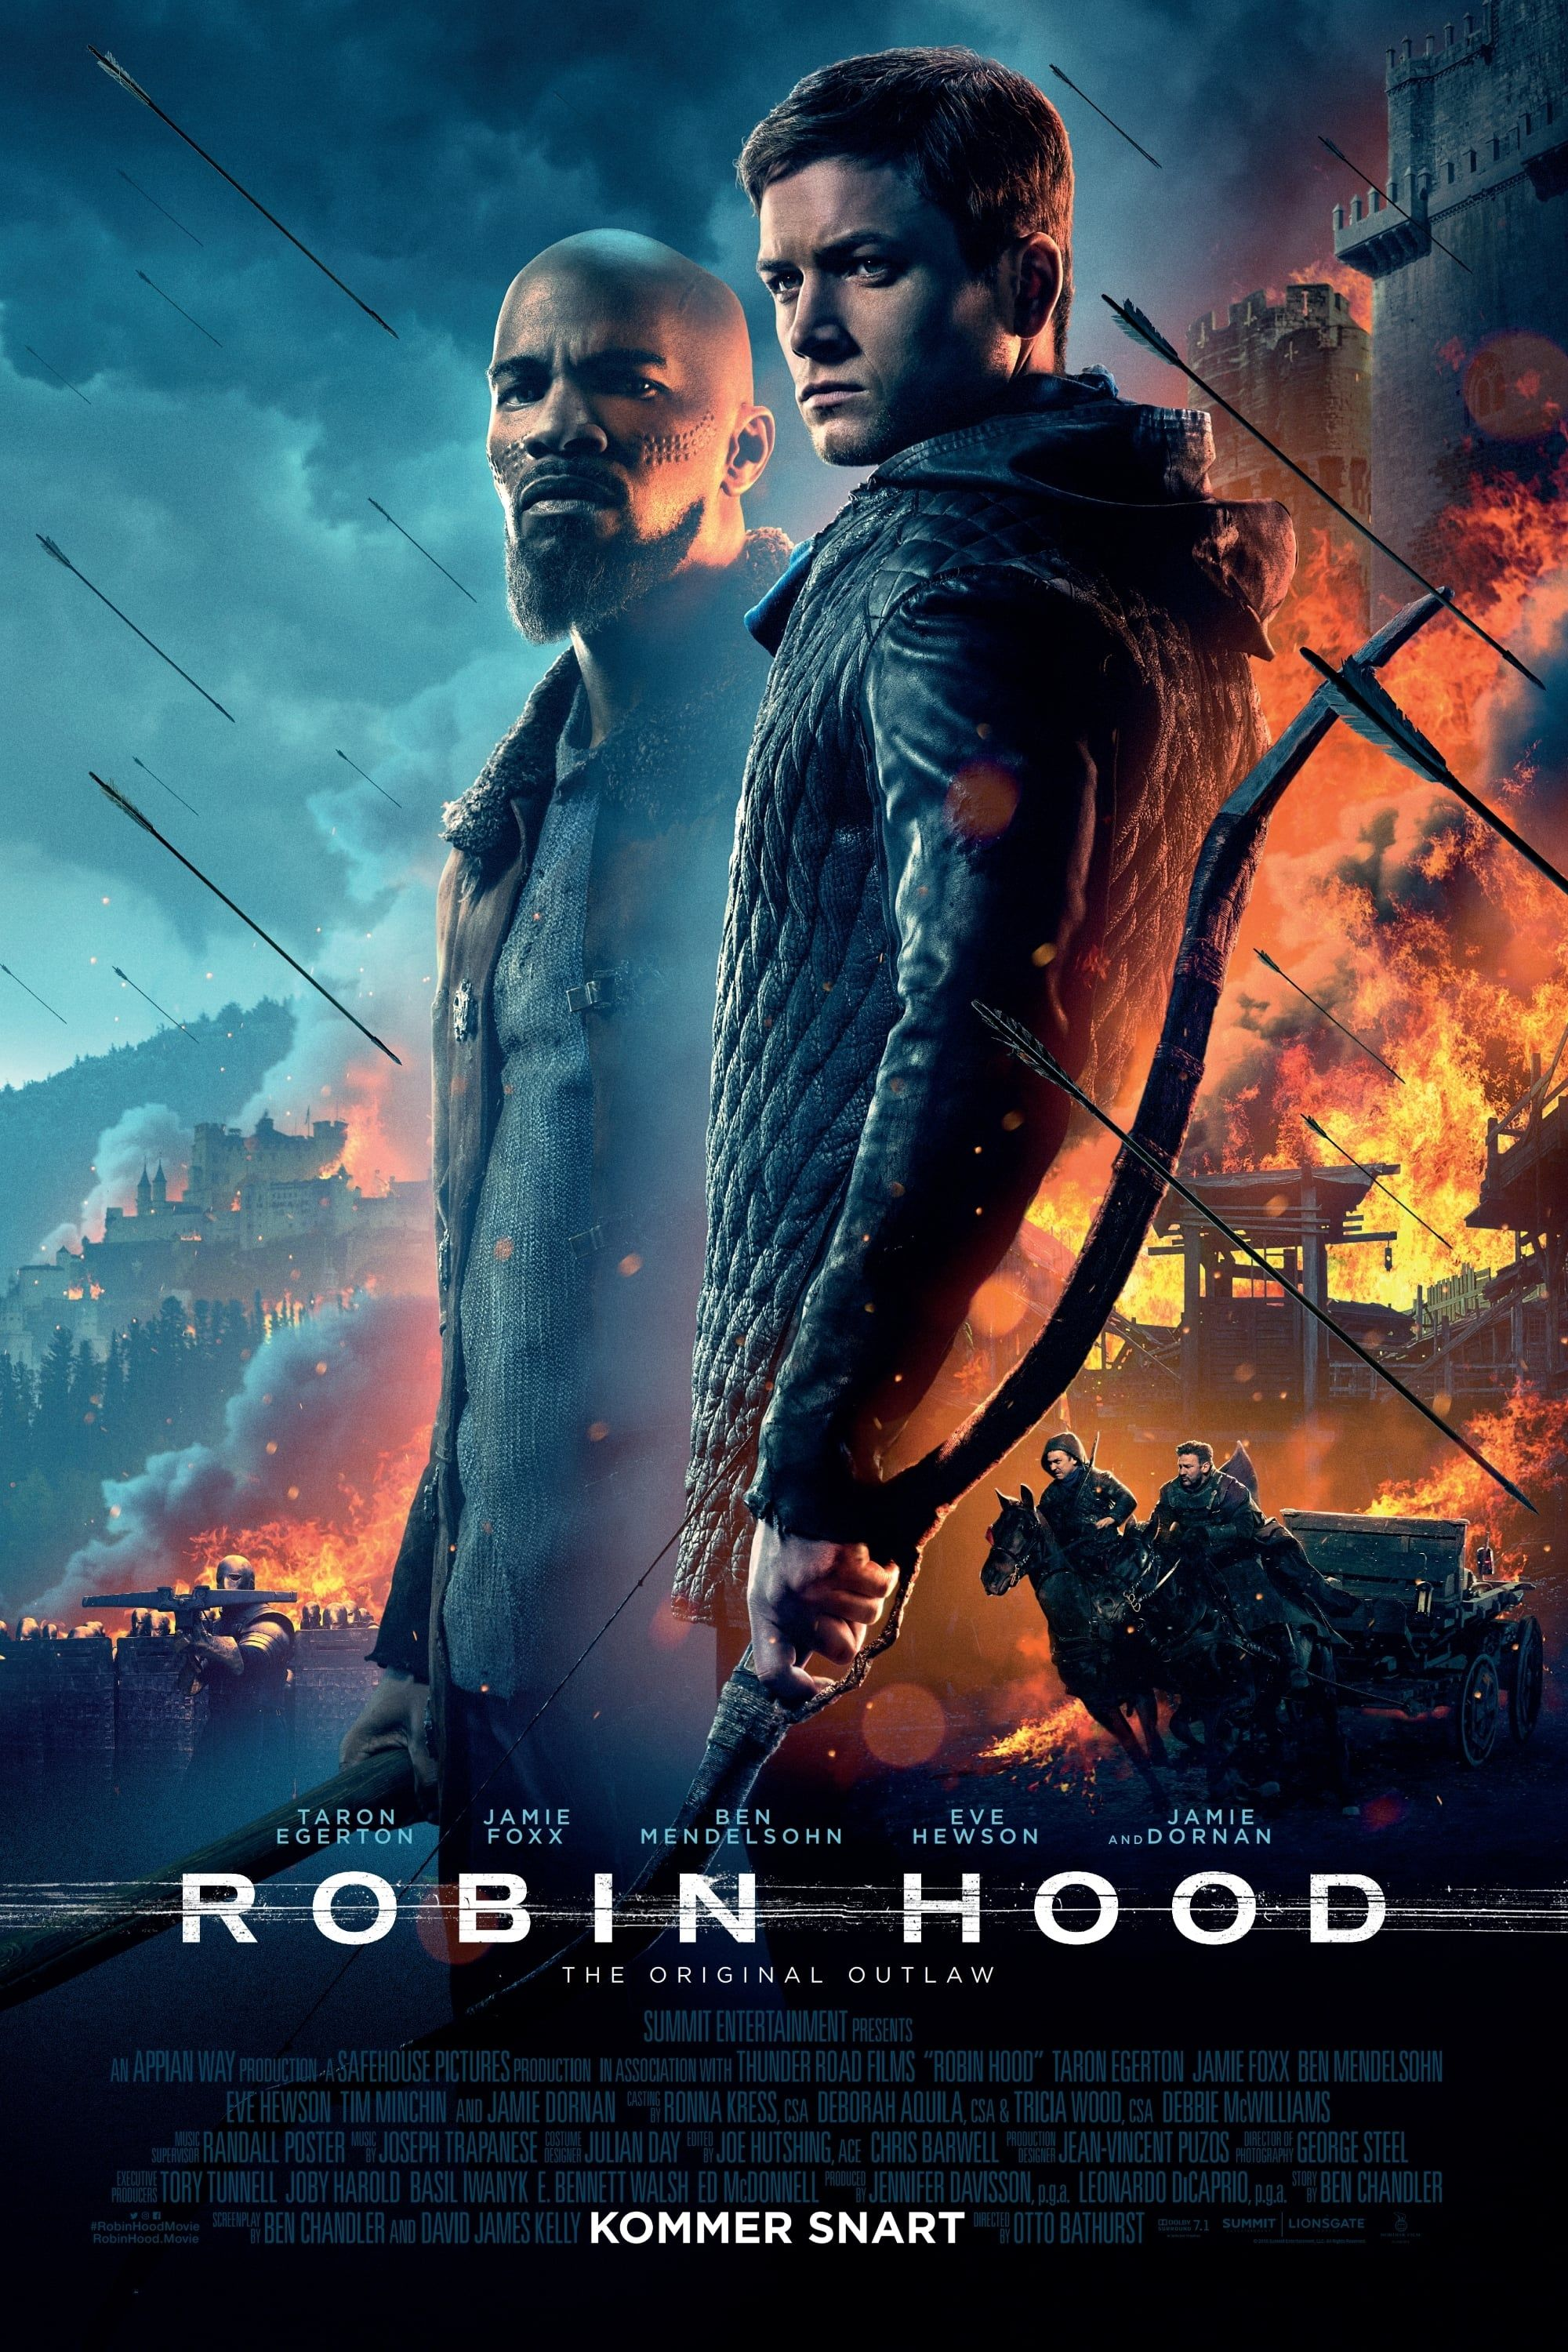 Robin Hood full movie Hd1080p Sub English Play For Free Robin Hood Free Movies Online Full Movies